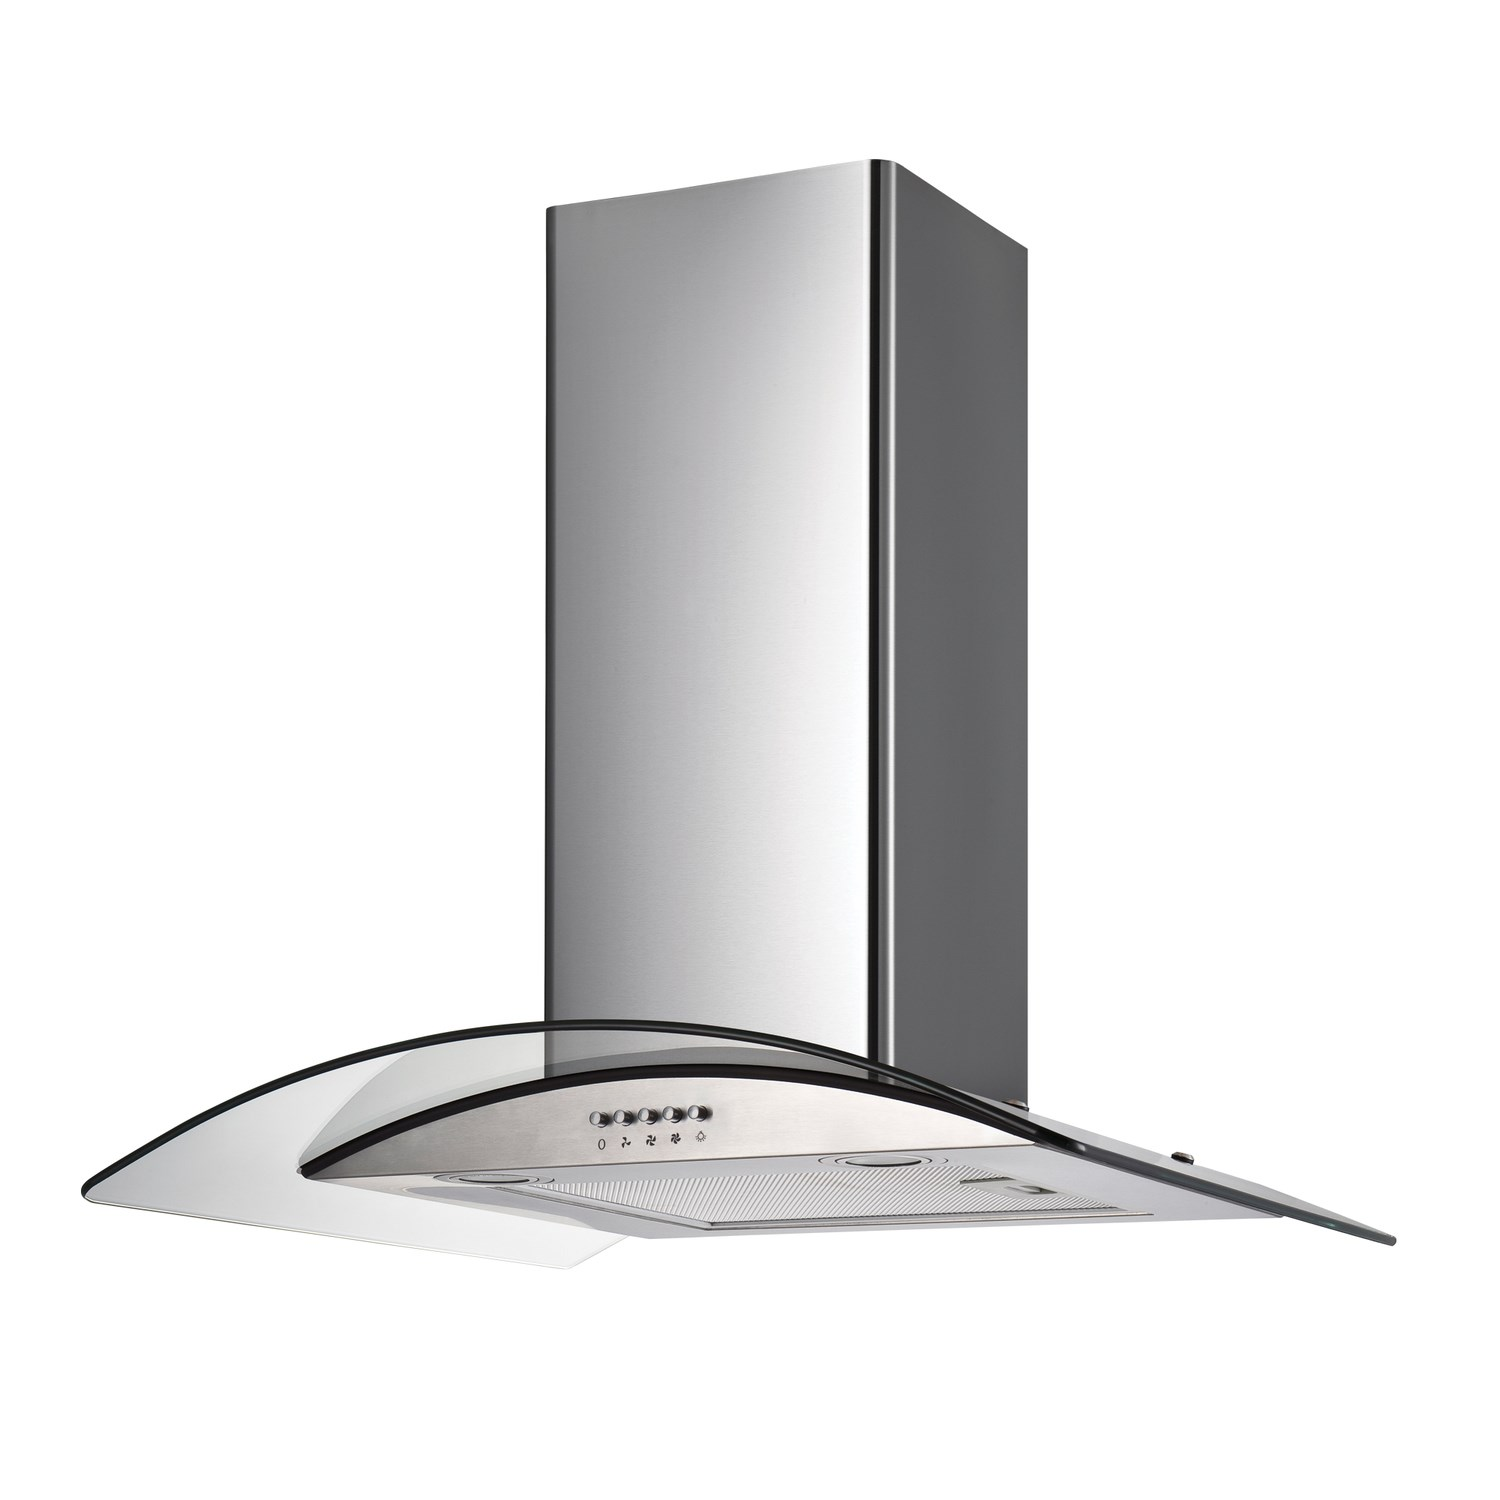 Cooker Hood With A Window ~ Electriq cm curved glass stainless steel chimney cooker